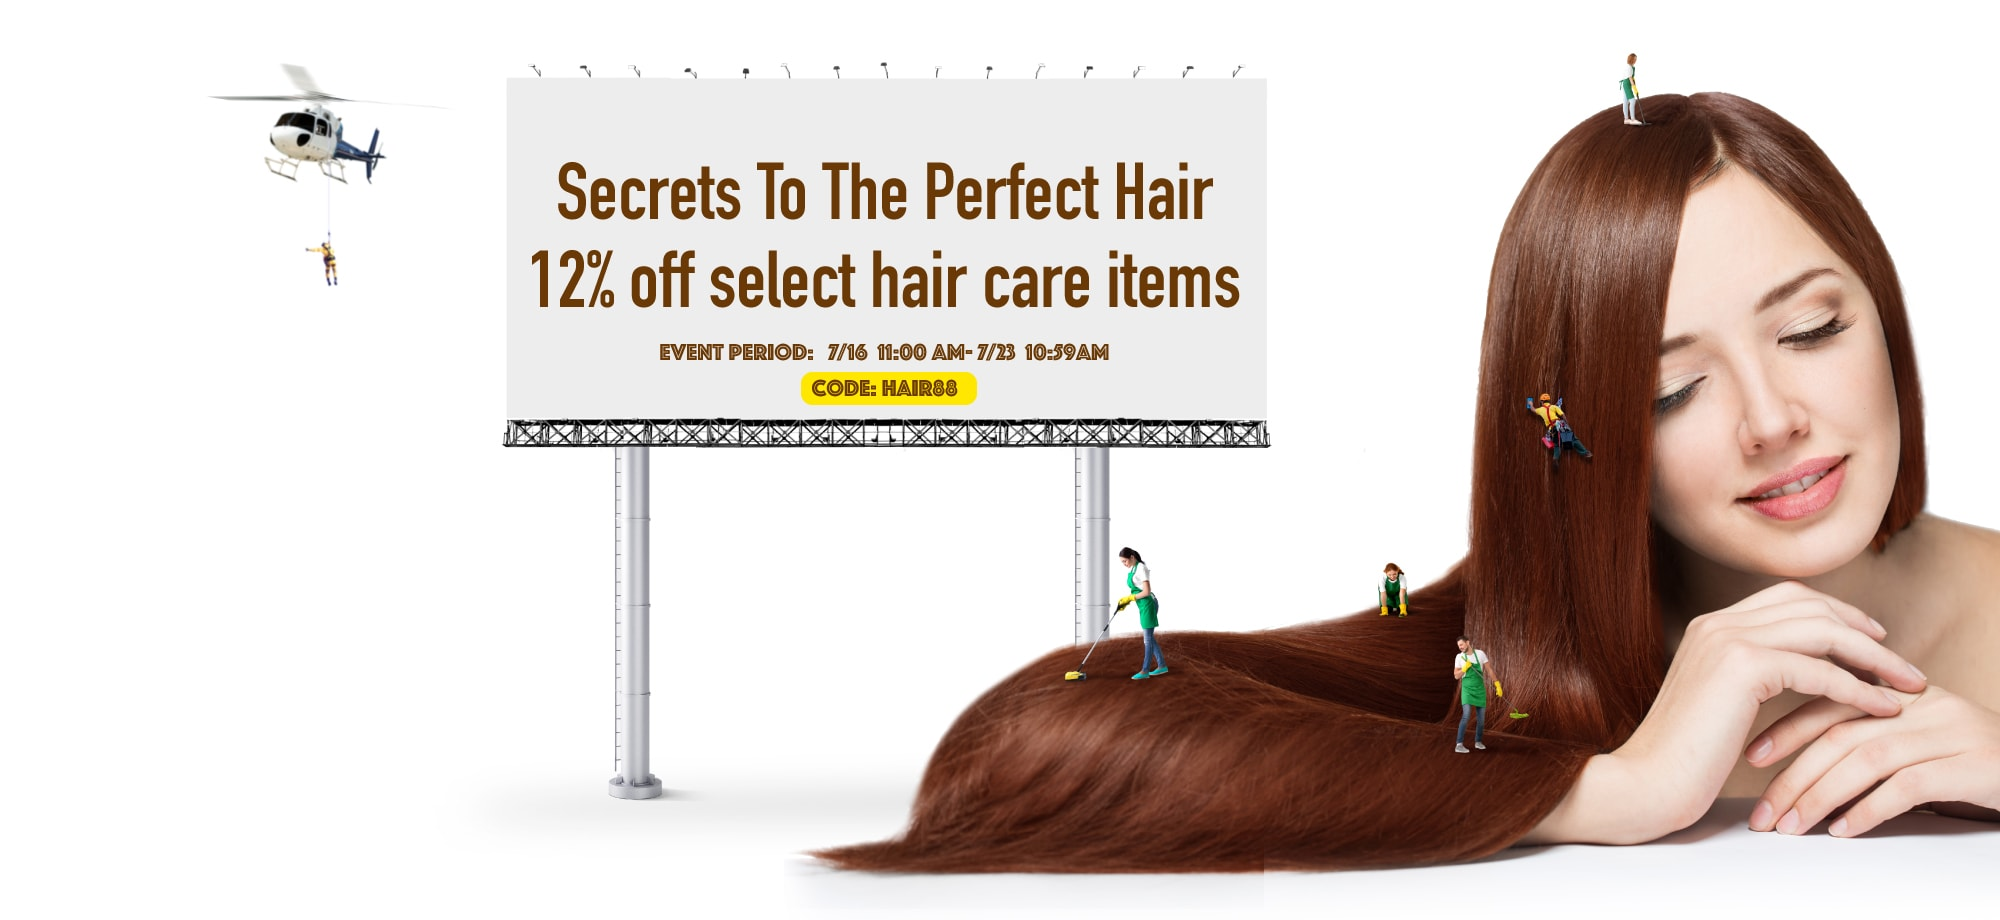 Secrets To The Perfect Hair